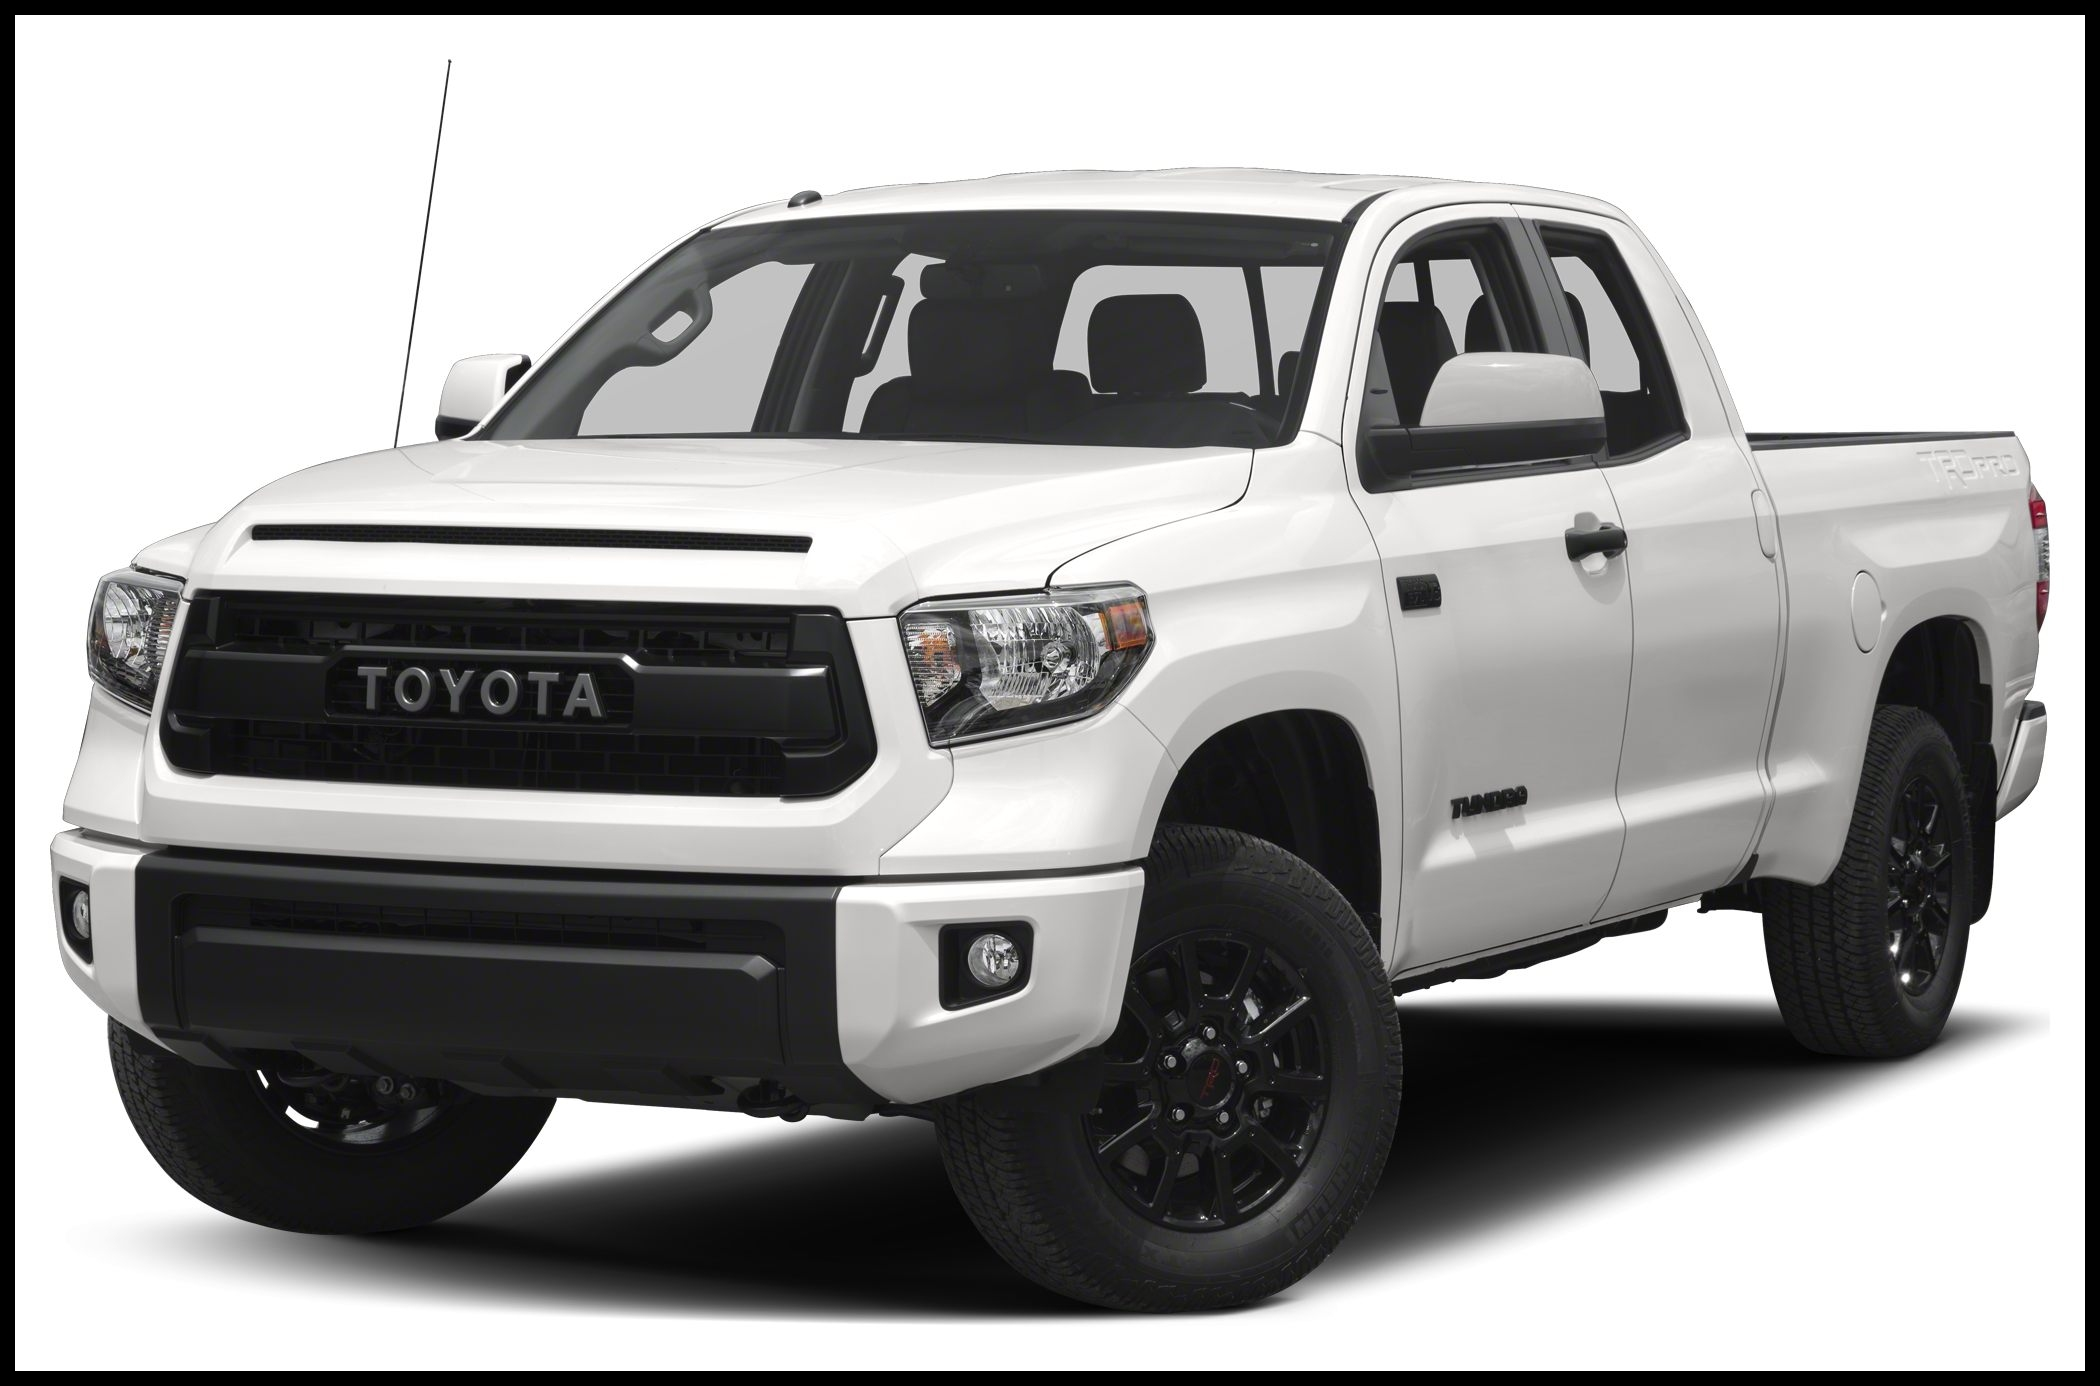 2017 Toyota Tundra TRD Pro 5 7L V8 4x4 Double Cab 6 6 ft box 145 7 in WB Specs and Prices